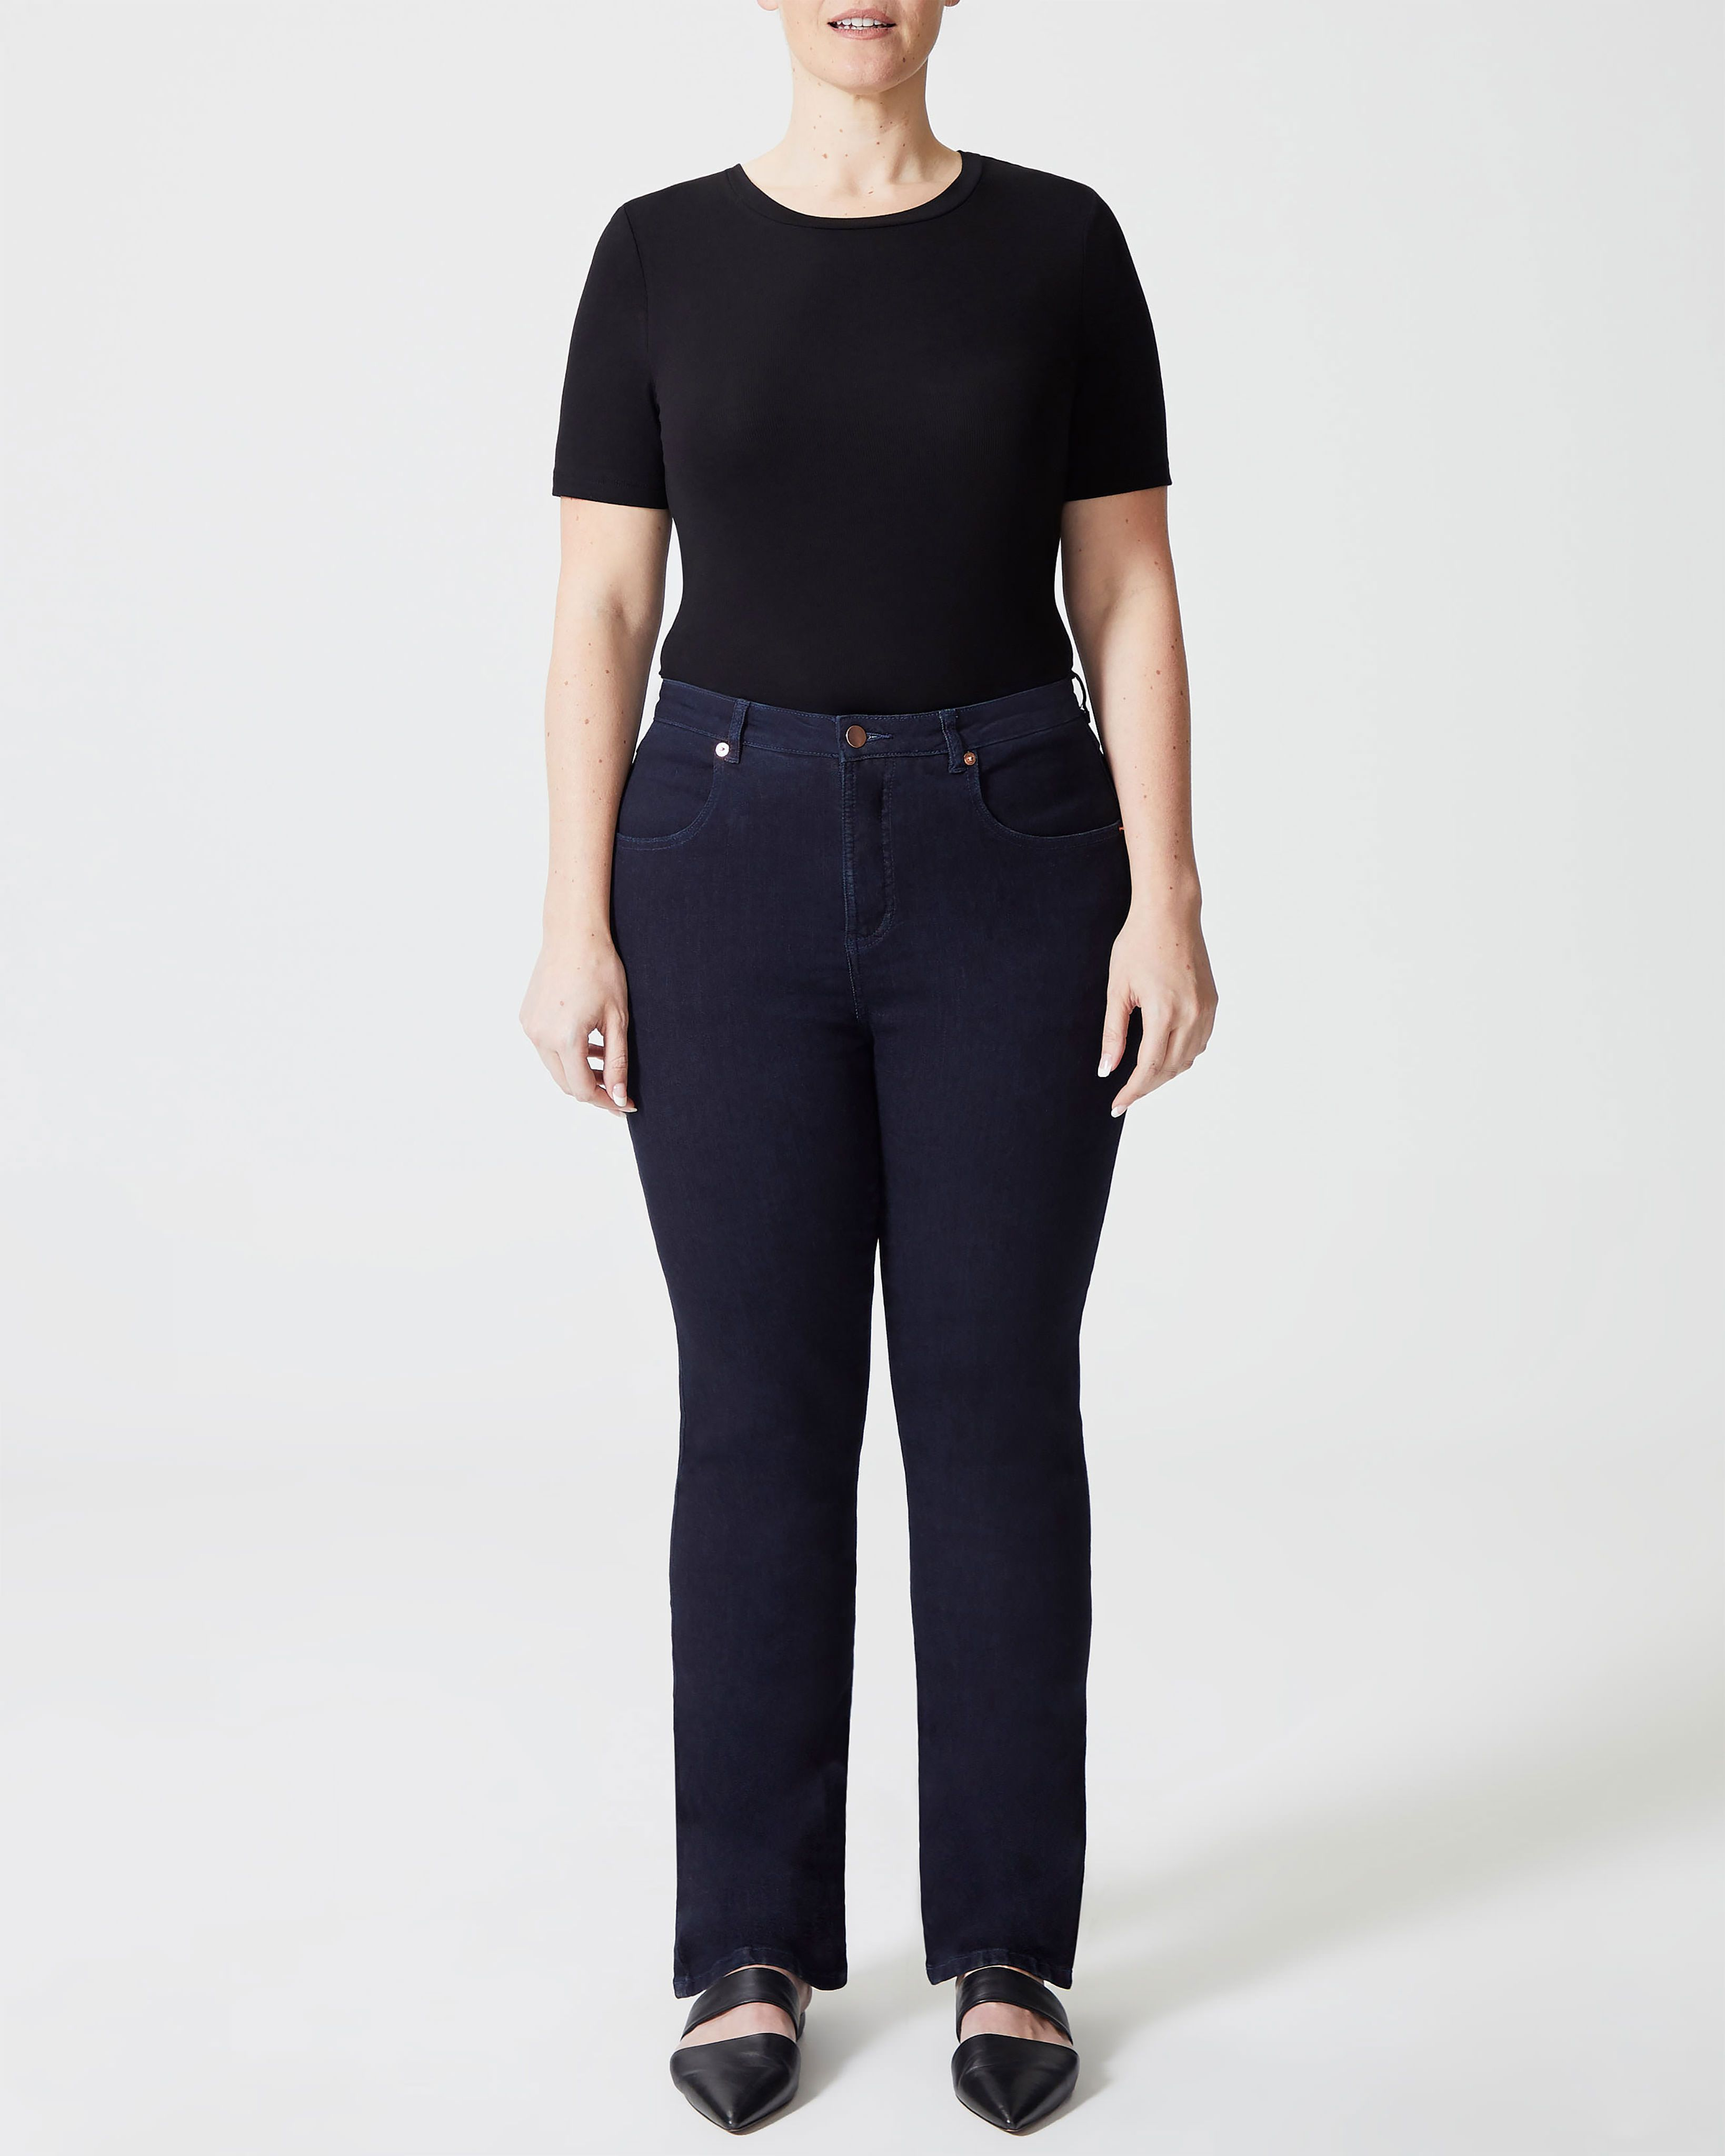 Marne Bootcut Jeans 32 inch - Black